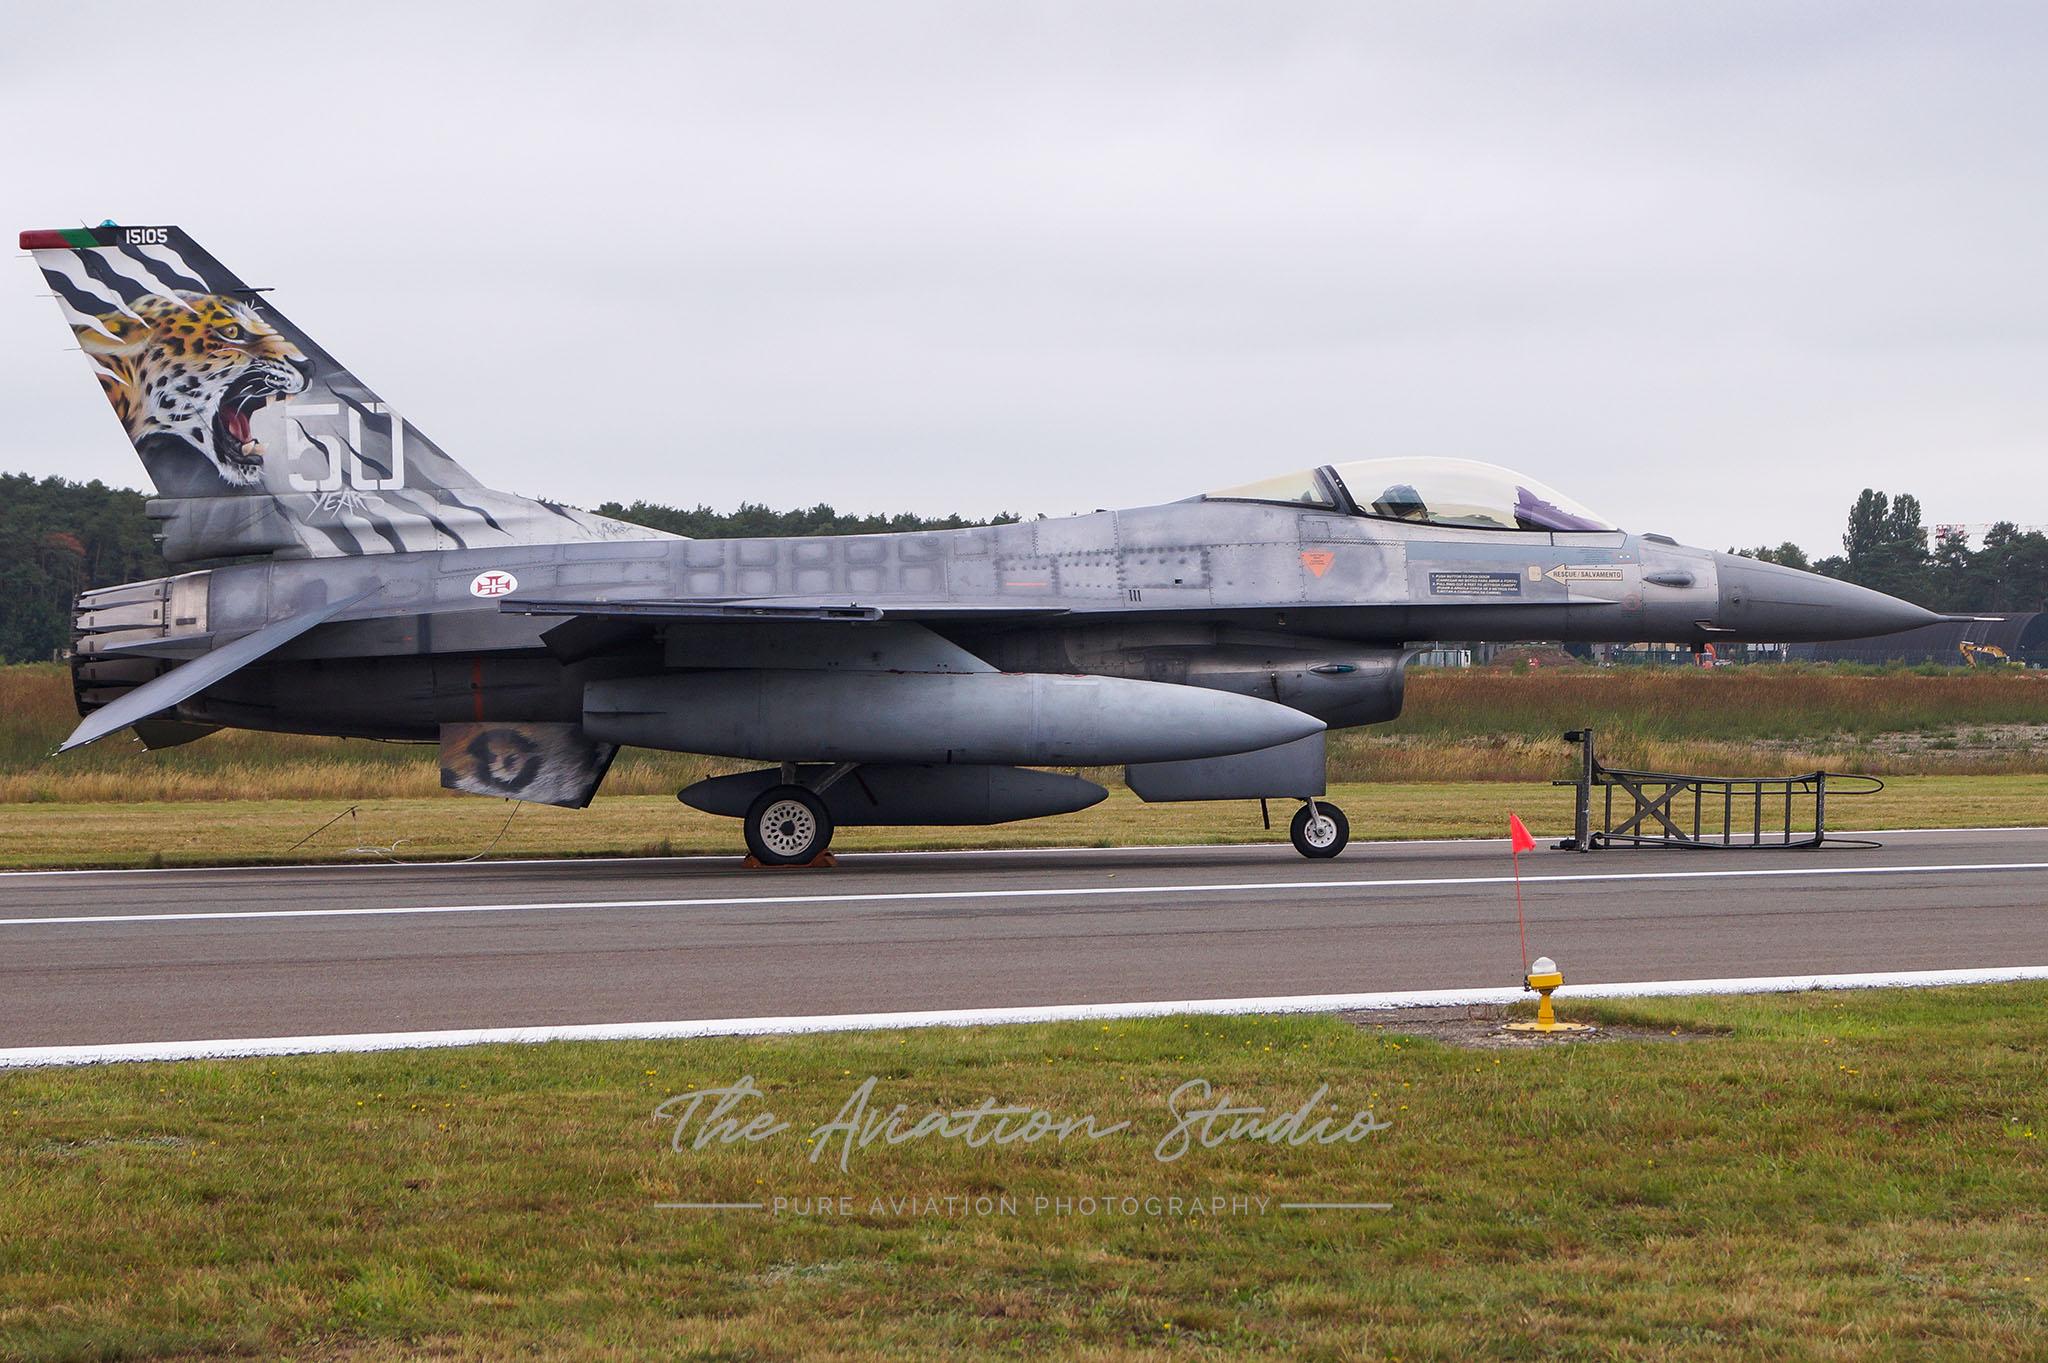 Portuguese Air Force General Dynamics F-16AM Fighting Falcon 15105 at Spottersday Kleine Brogel 2021